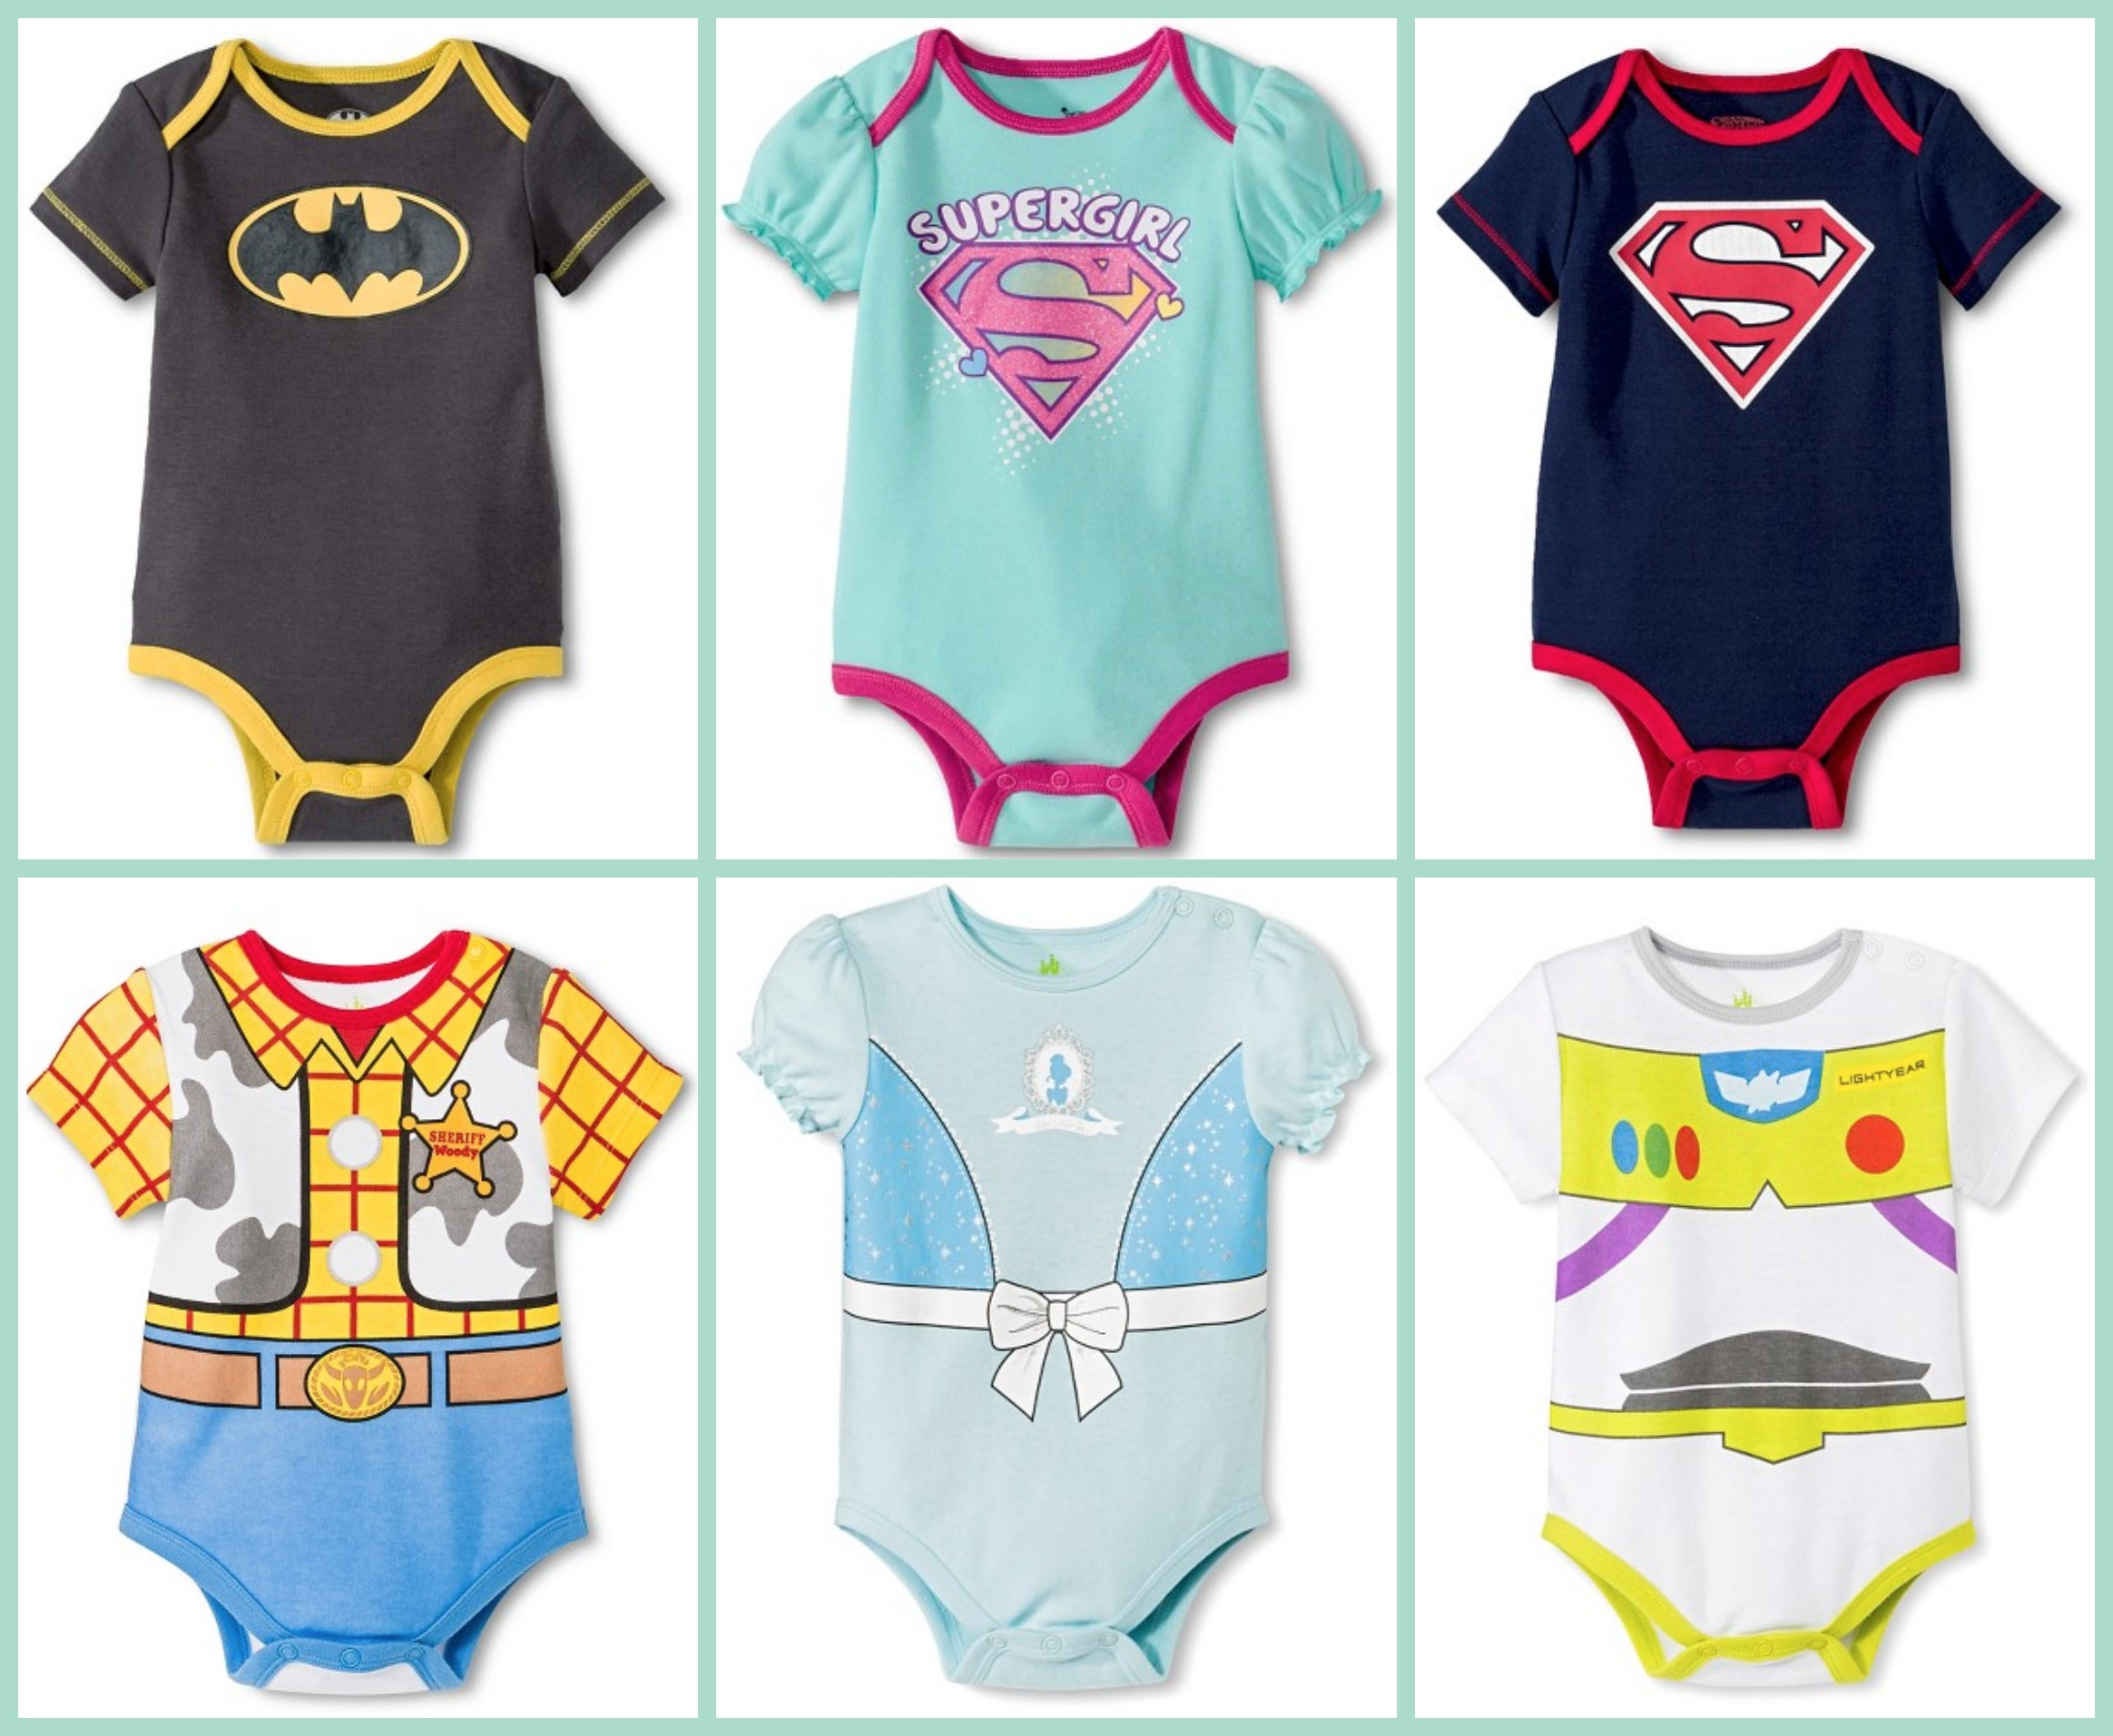 852f0e590 Target: Superhero and Disney Onesies $3.50 Each